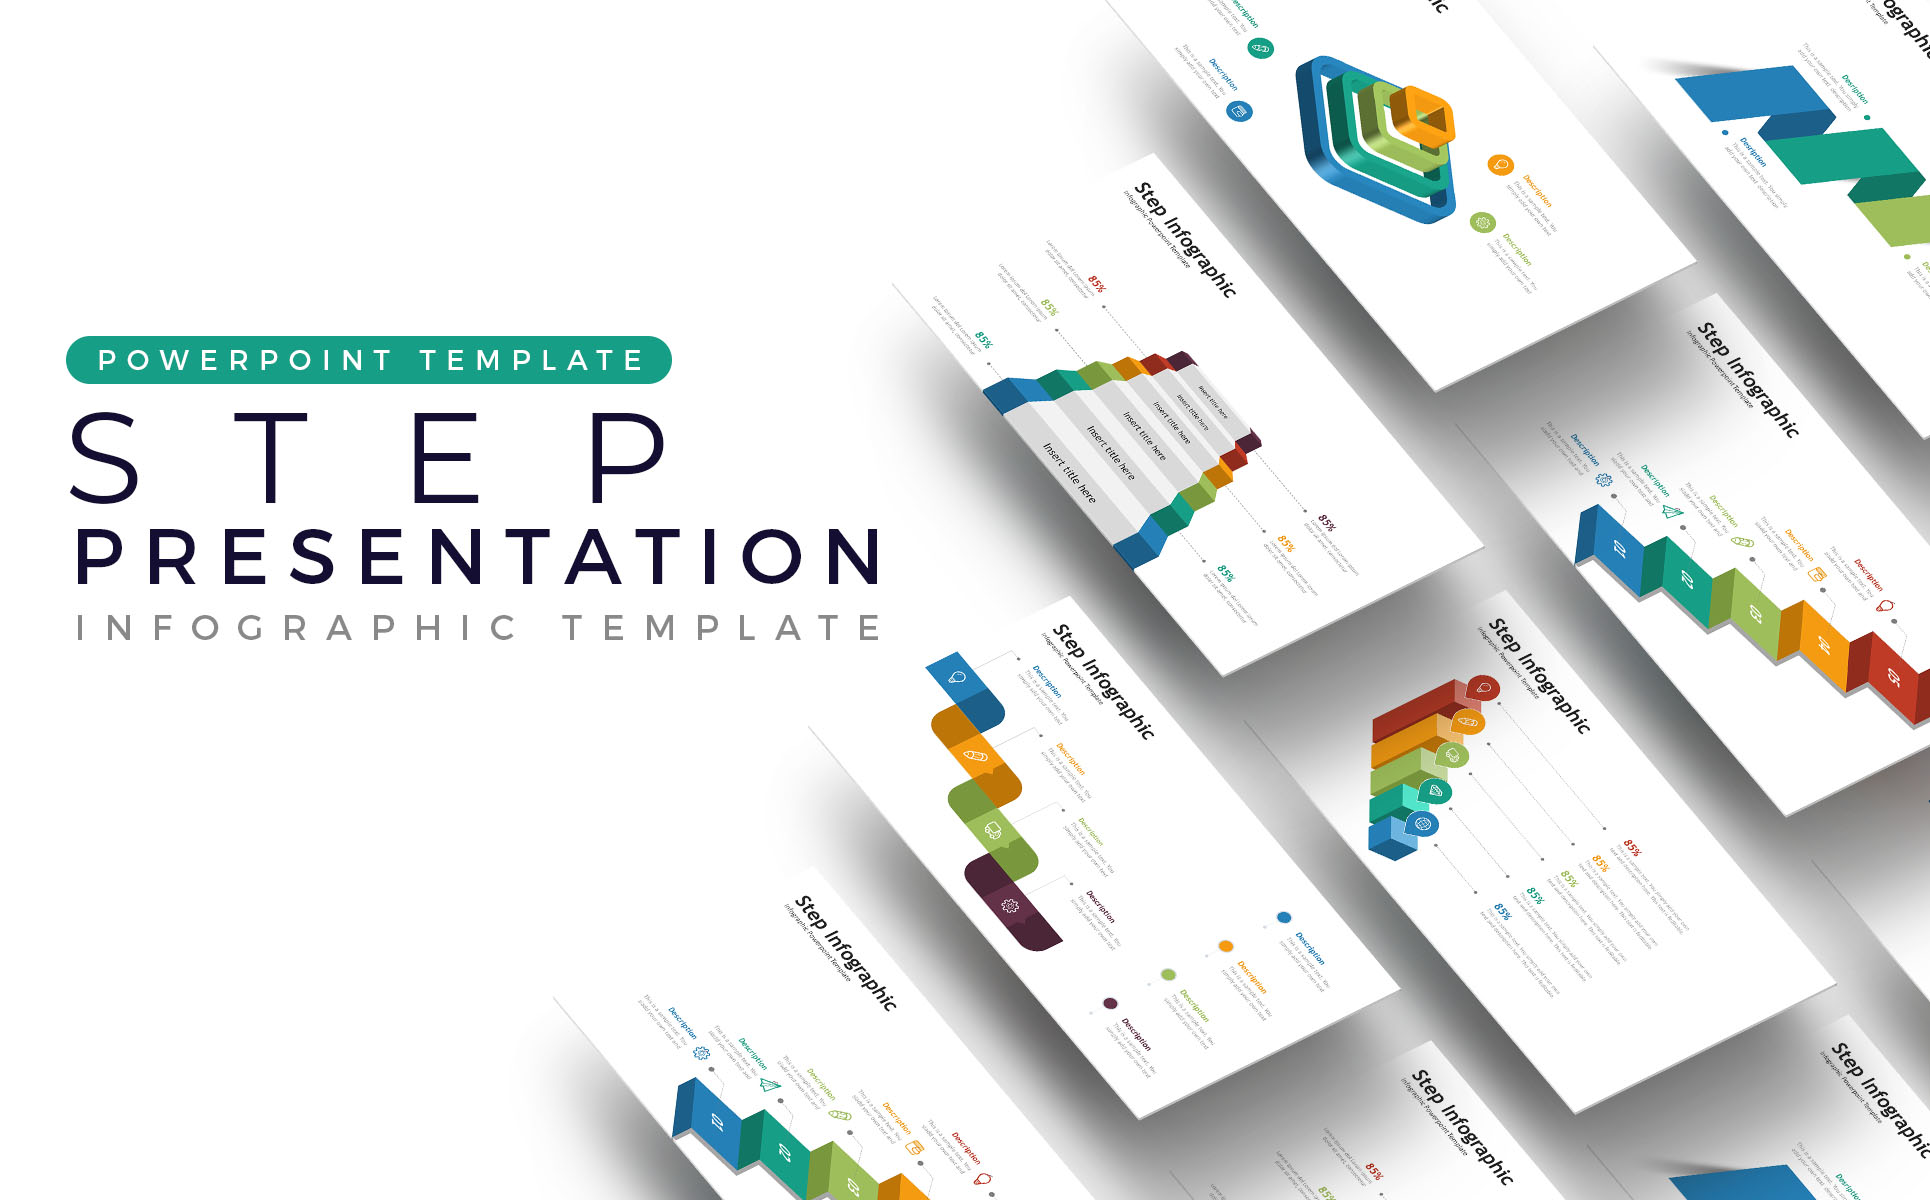 Step - Infographic Presentation Asset PowerPoint Template